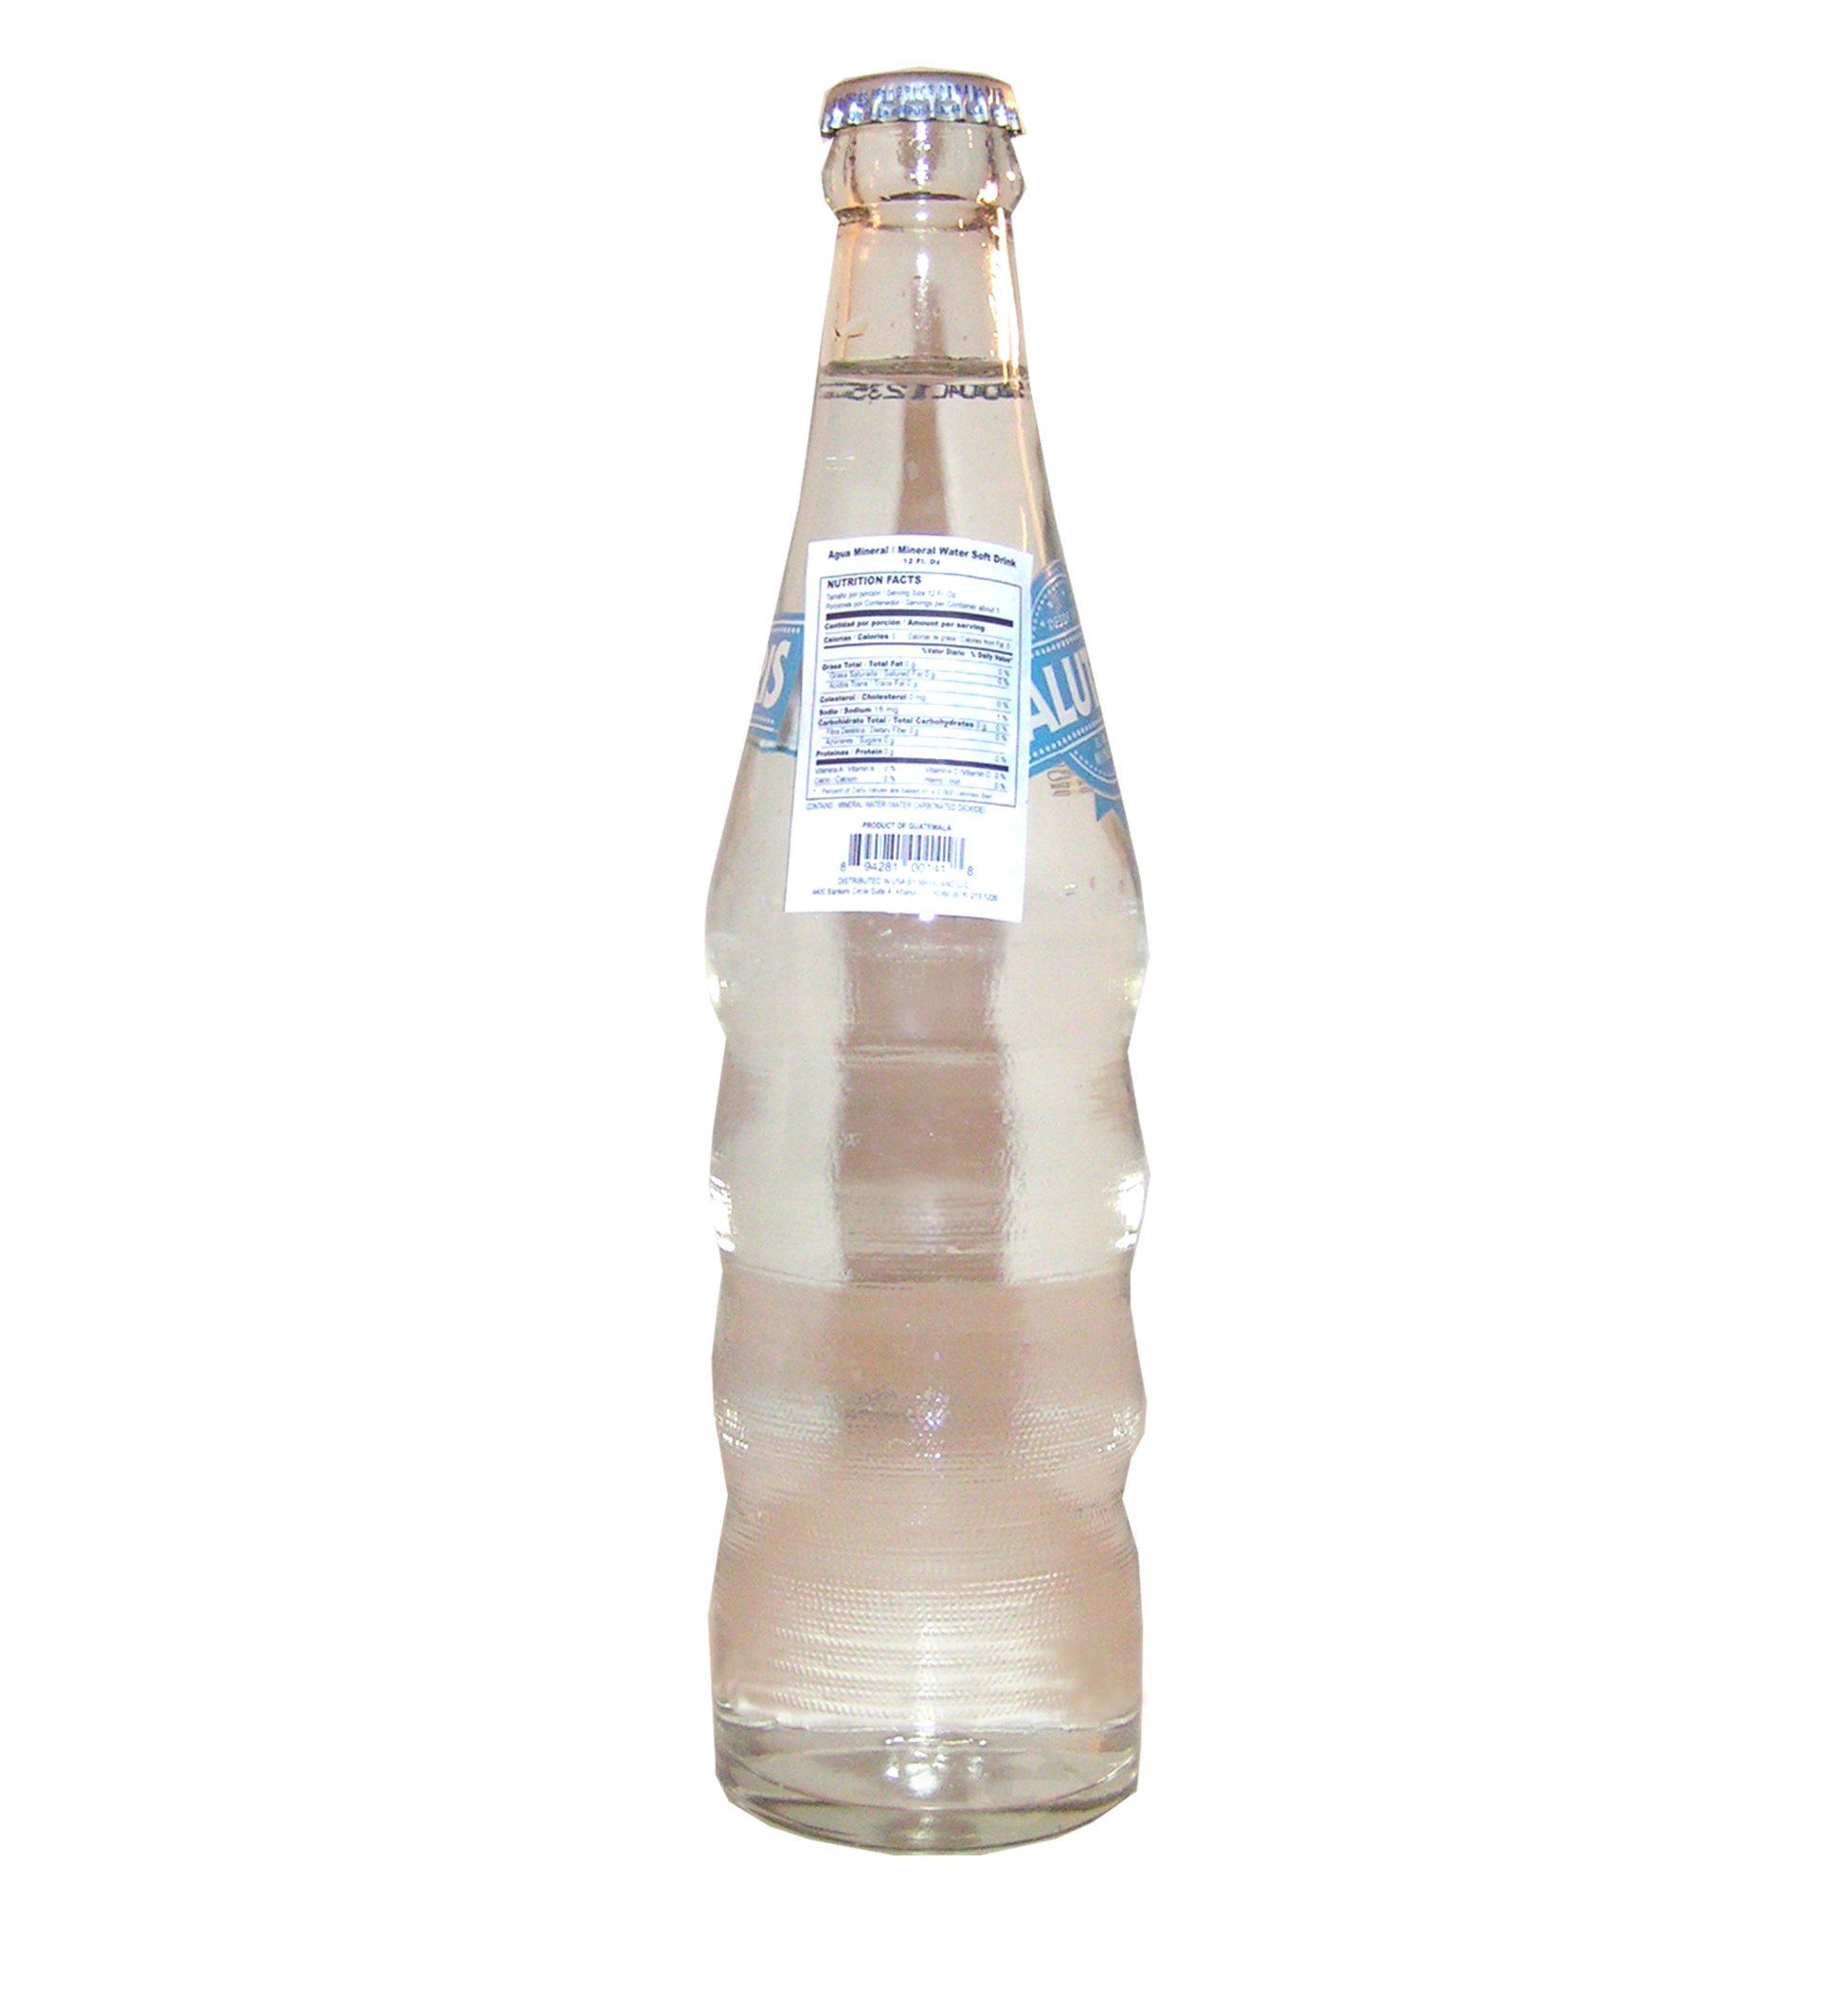 Mineral Water Drink 12 oz Agua Mineral (Pack of 1) by La Mariposa